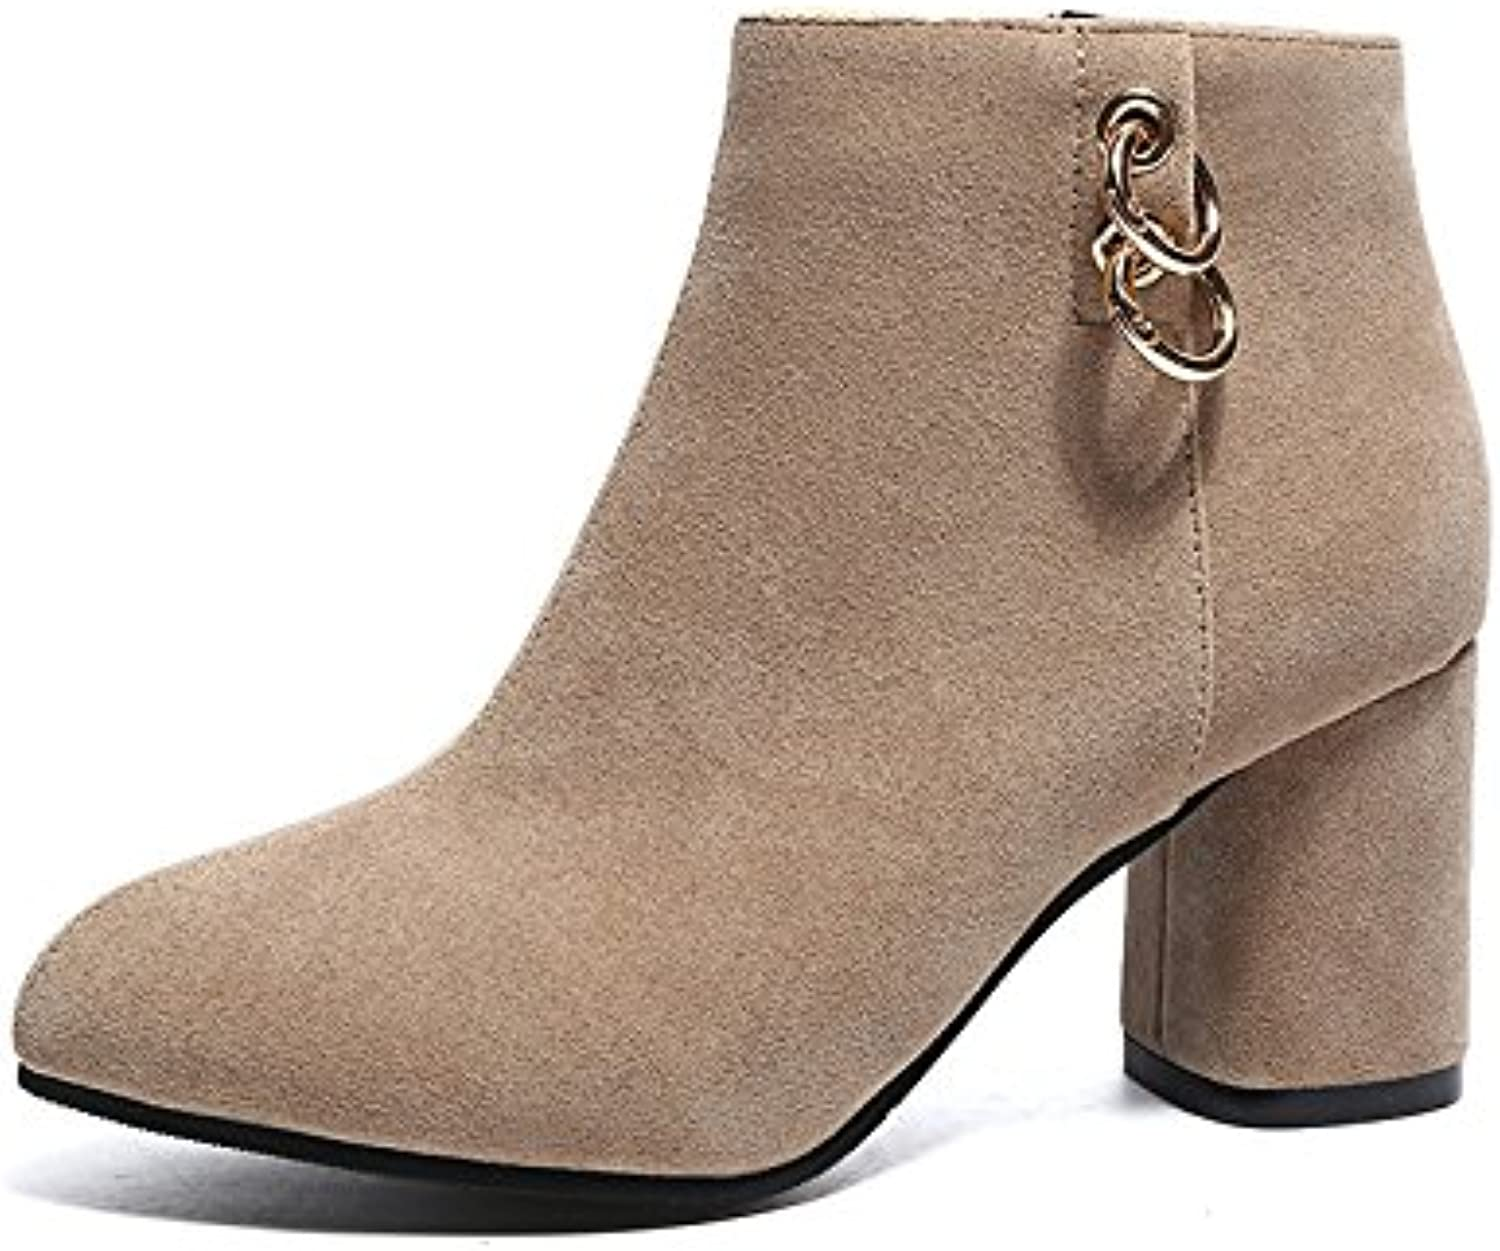 WYMBS Women's shoes Rough with Large Size Autumn Winter Suede Women's shoes Mid Heel Short Boots,Apricot,36